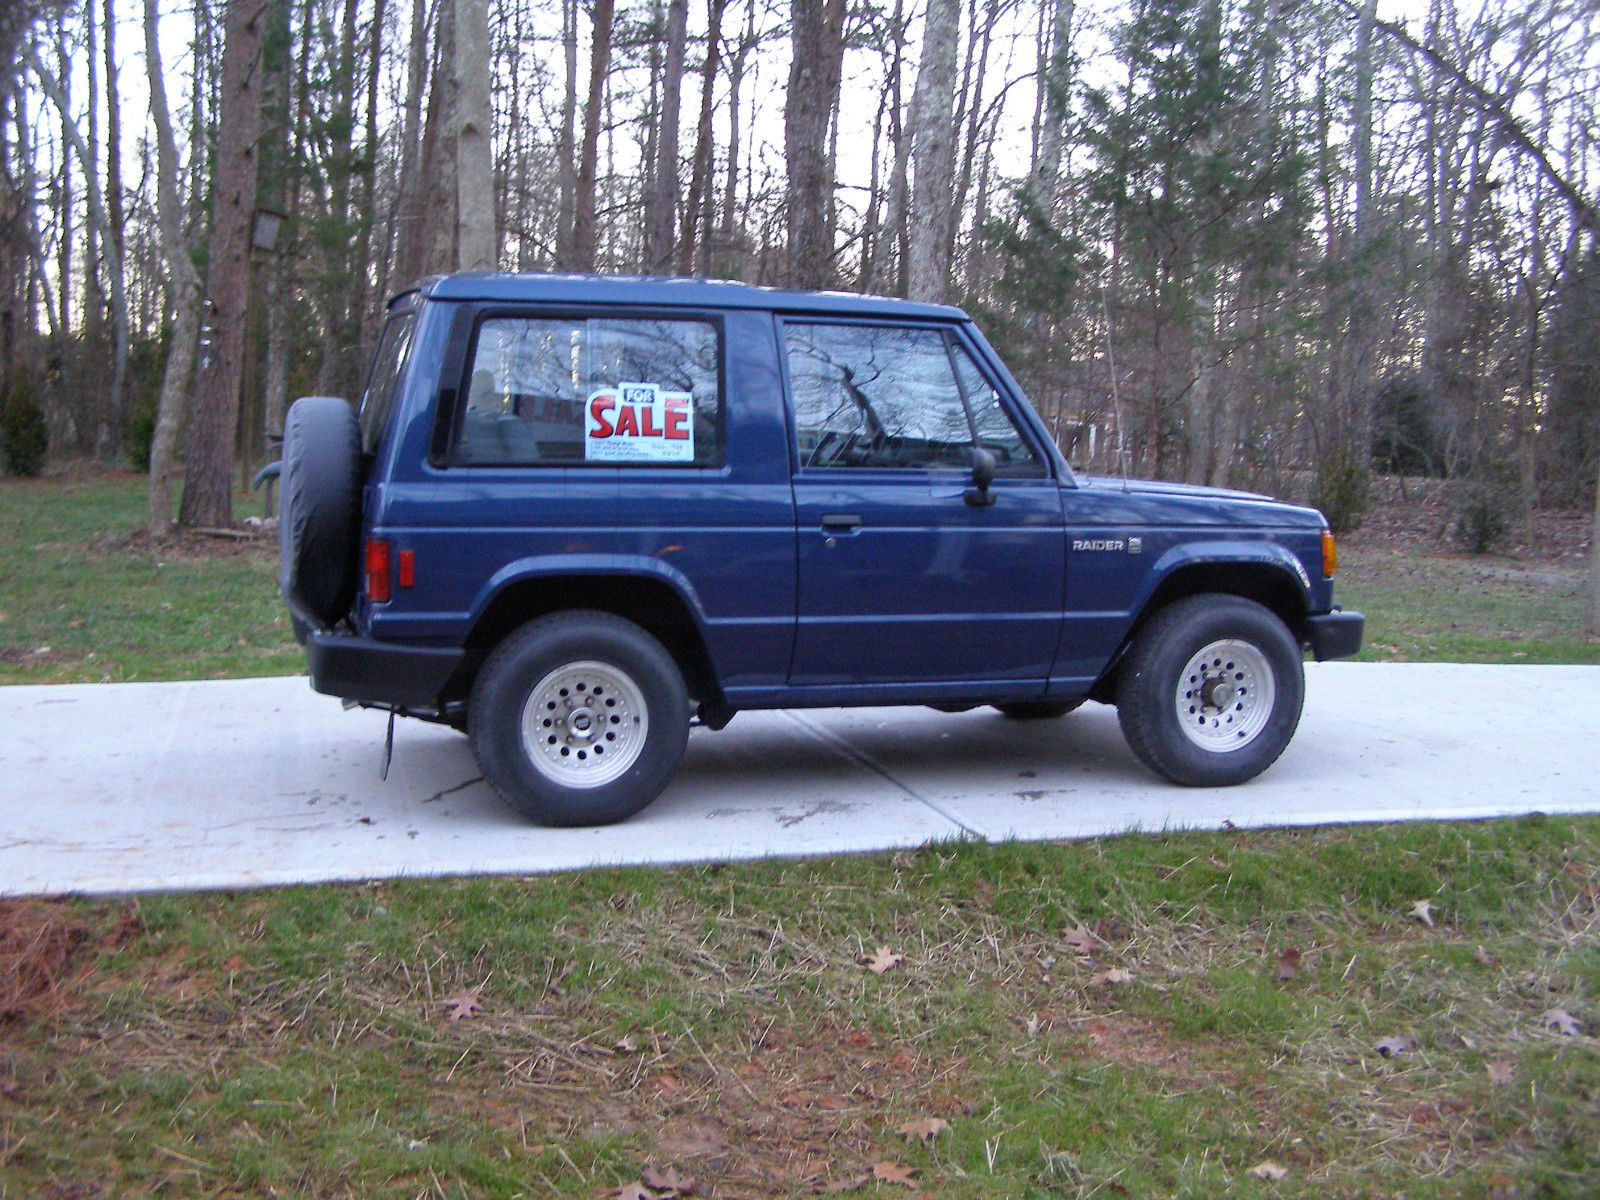 1987_greensboro nc 1987 dodge raider 2 6l for sale in greensboro, north carolina  at gsmx.co